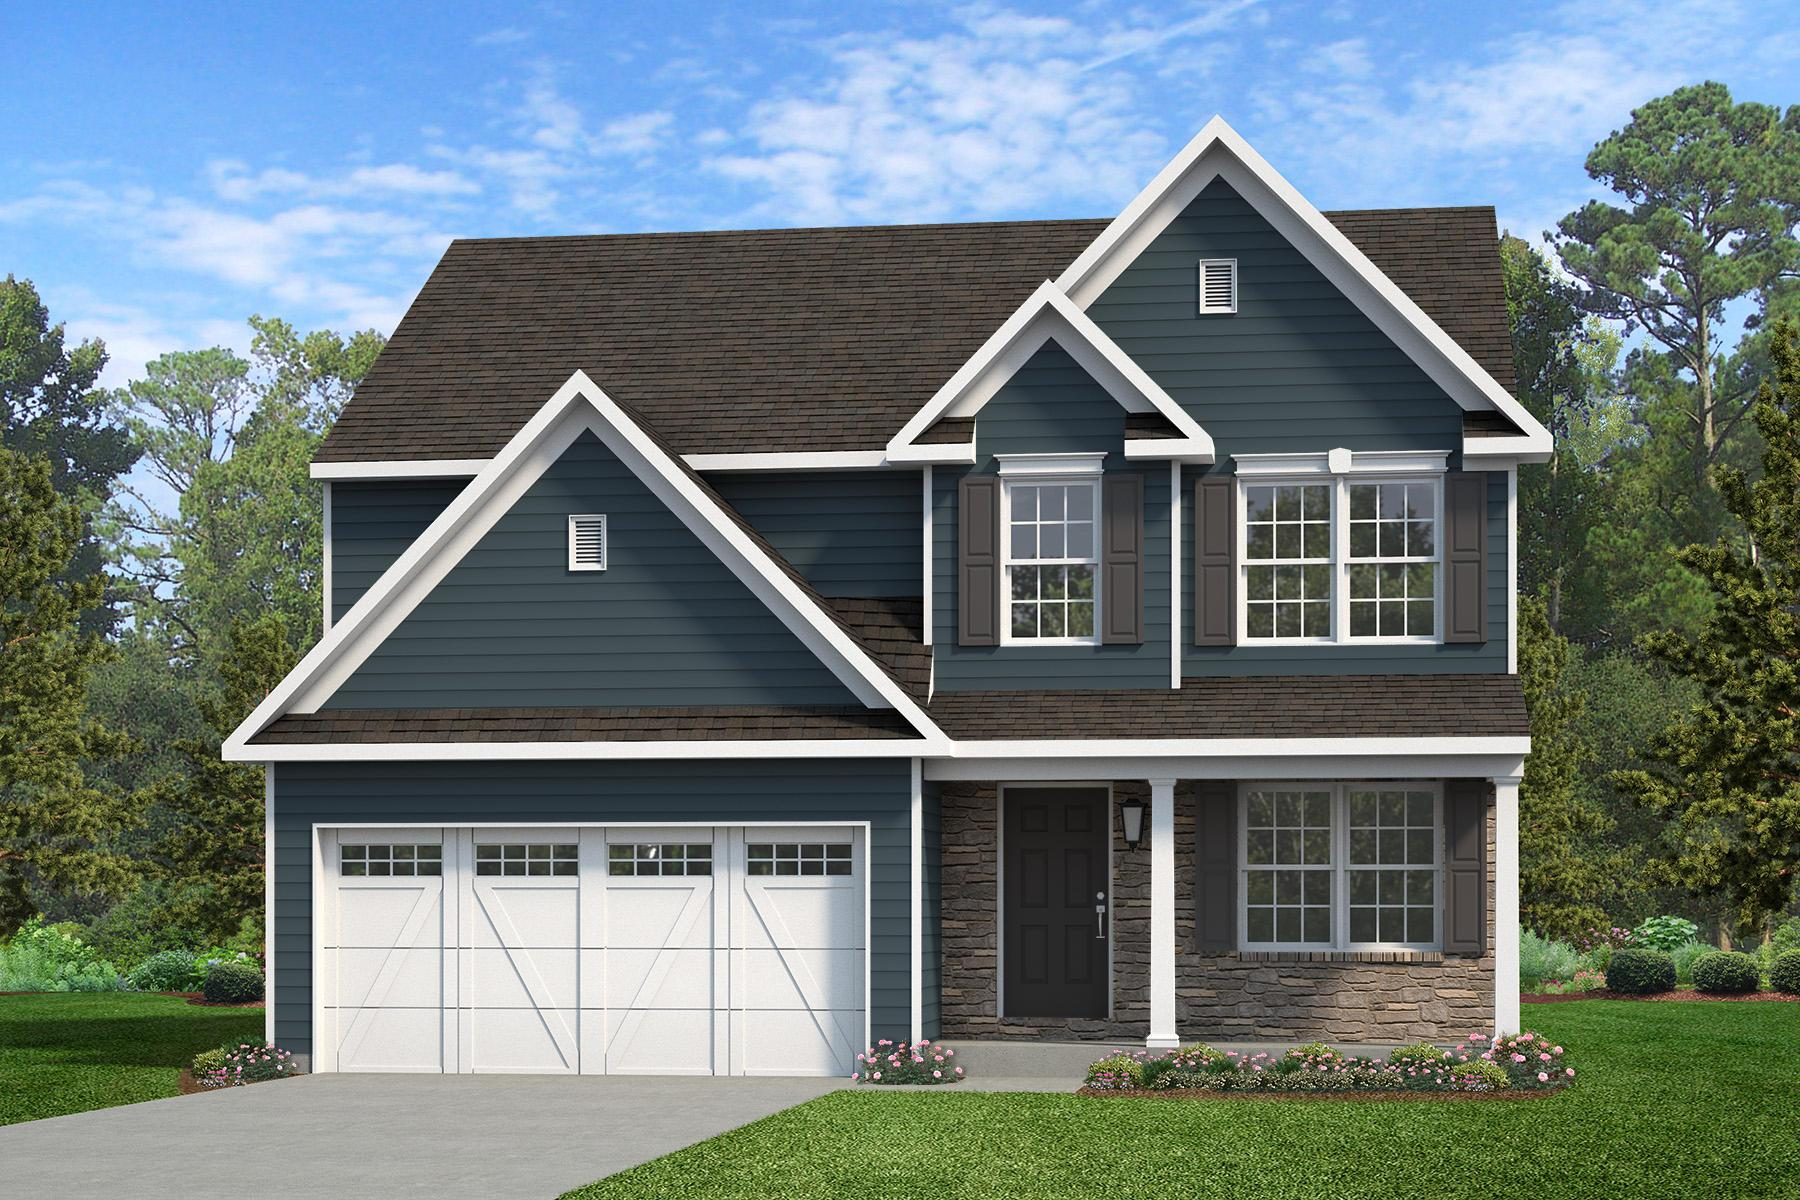 Exterior featured in the Alexander Heritage By Keystone Custom Homes in York, PA